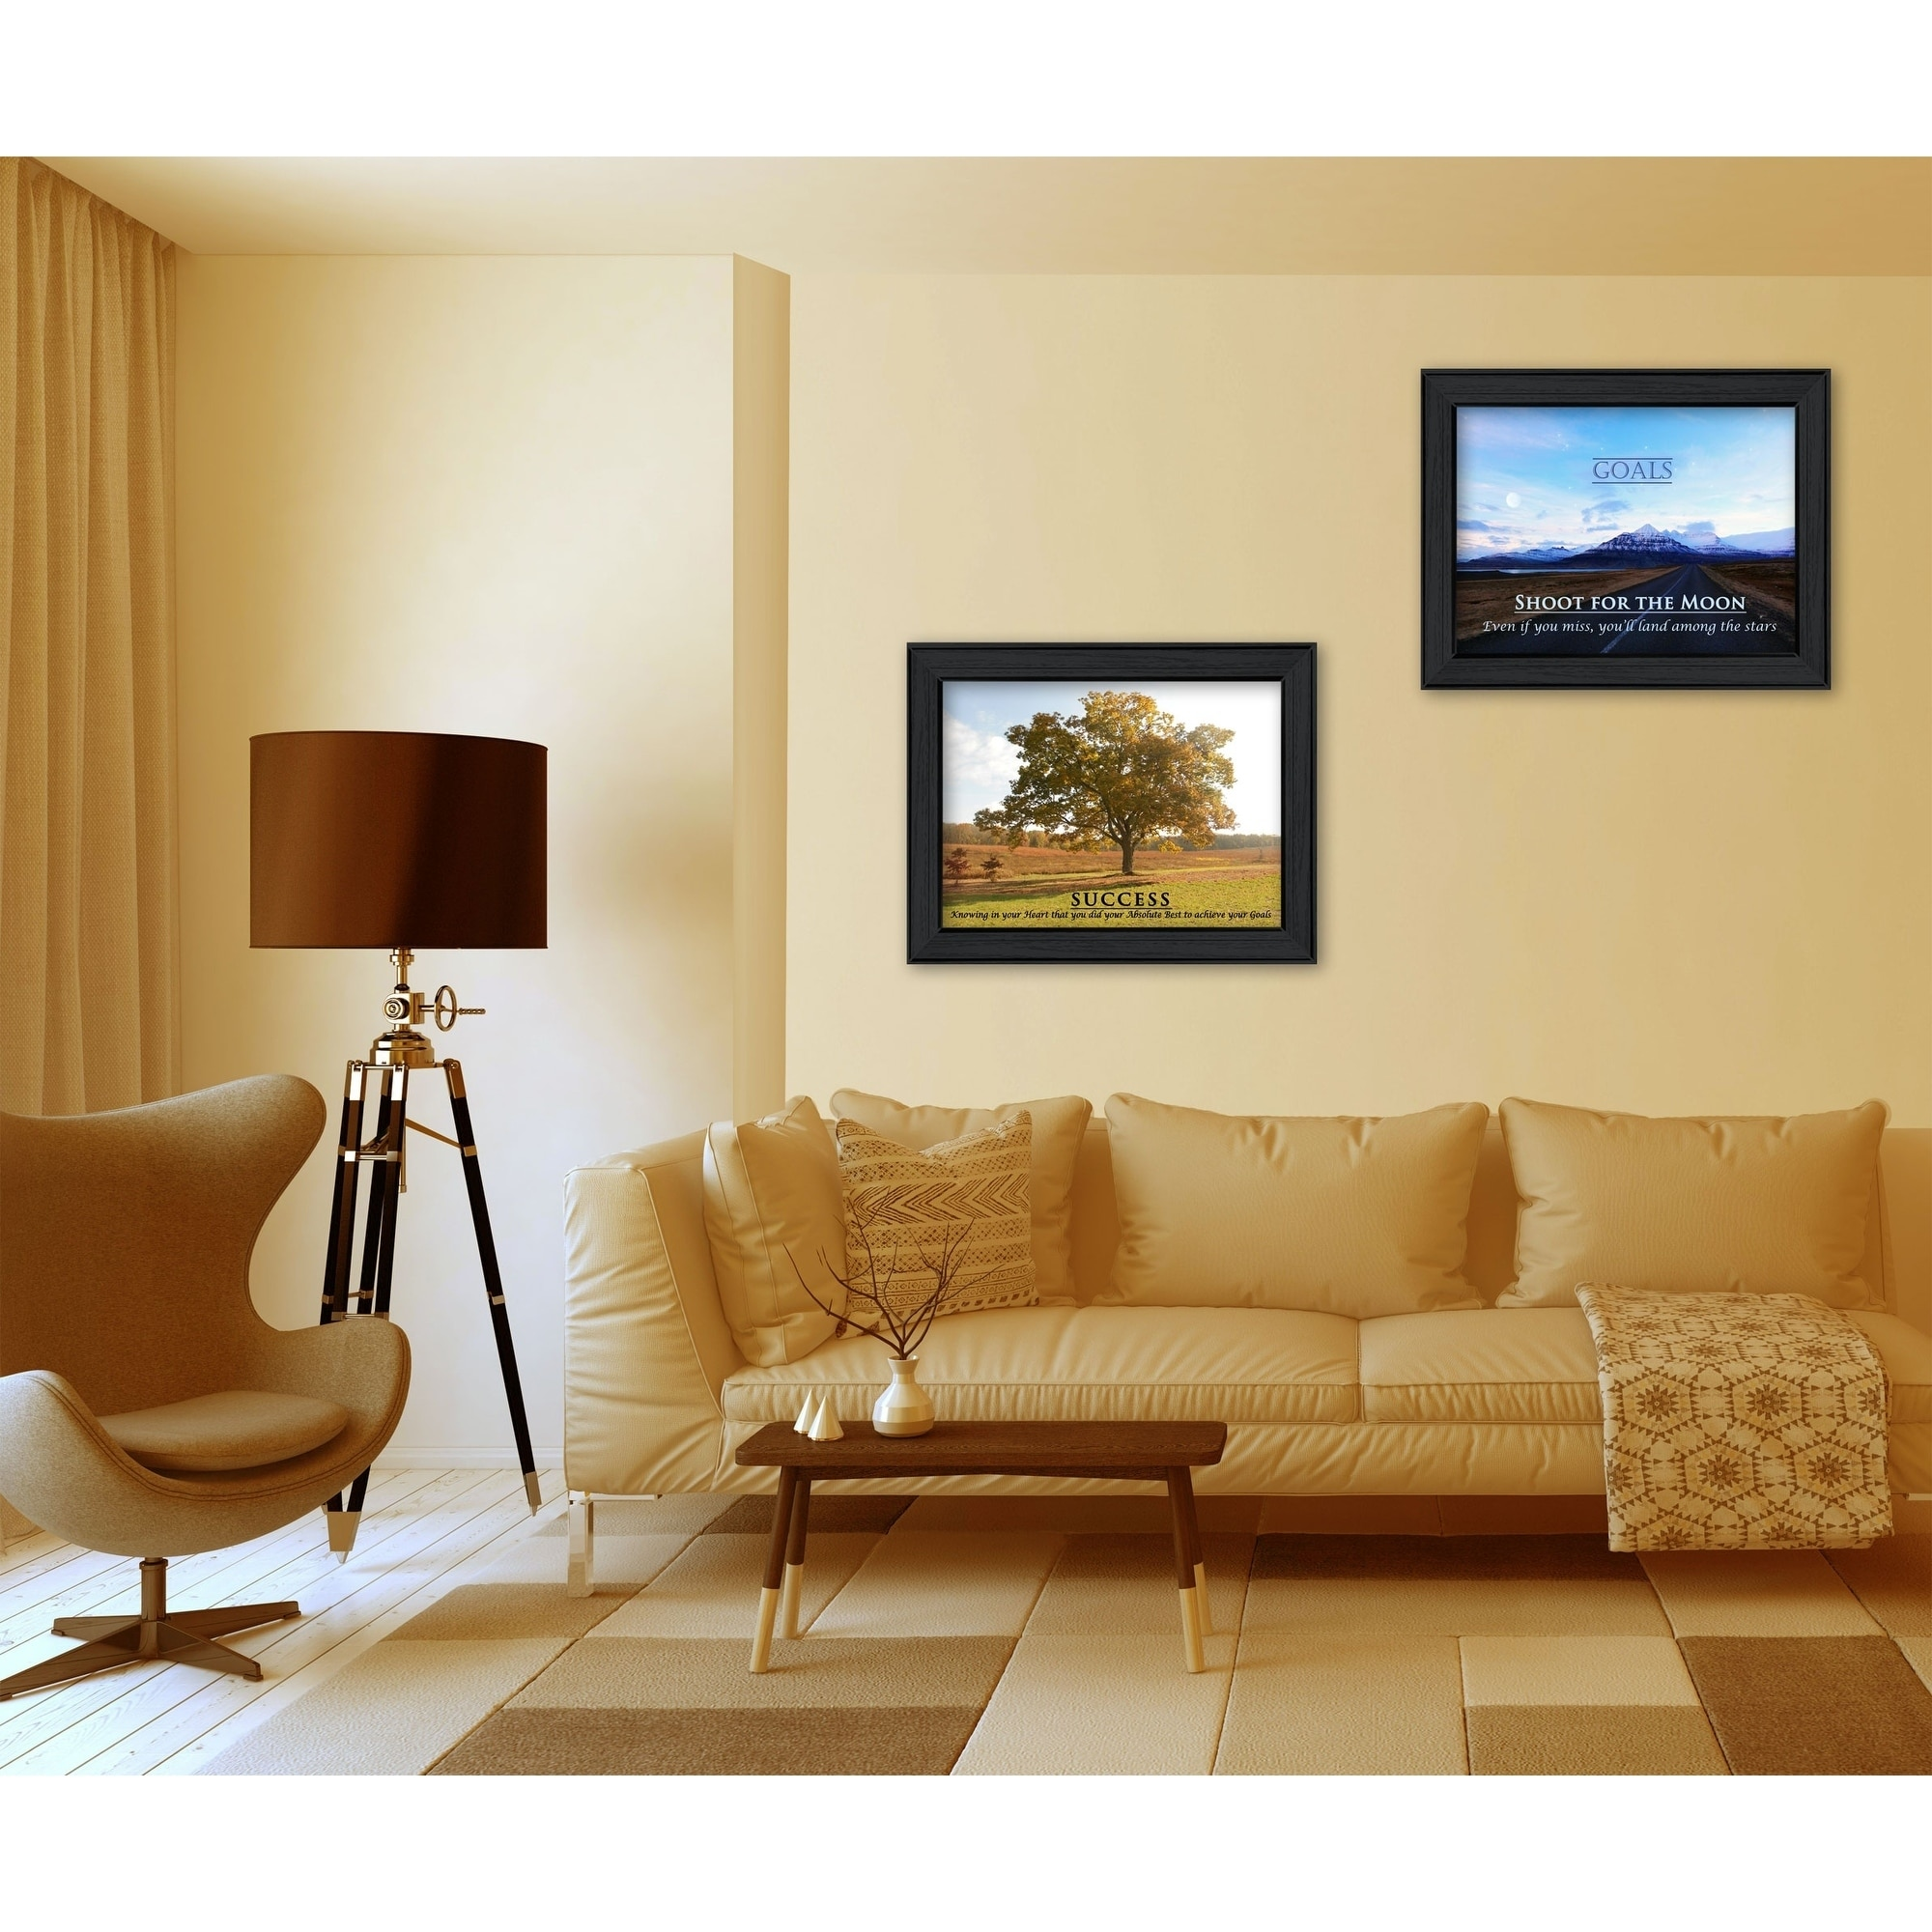 Amazing Wall Art From The Heart Photos - Wall Art Collections ...